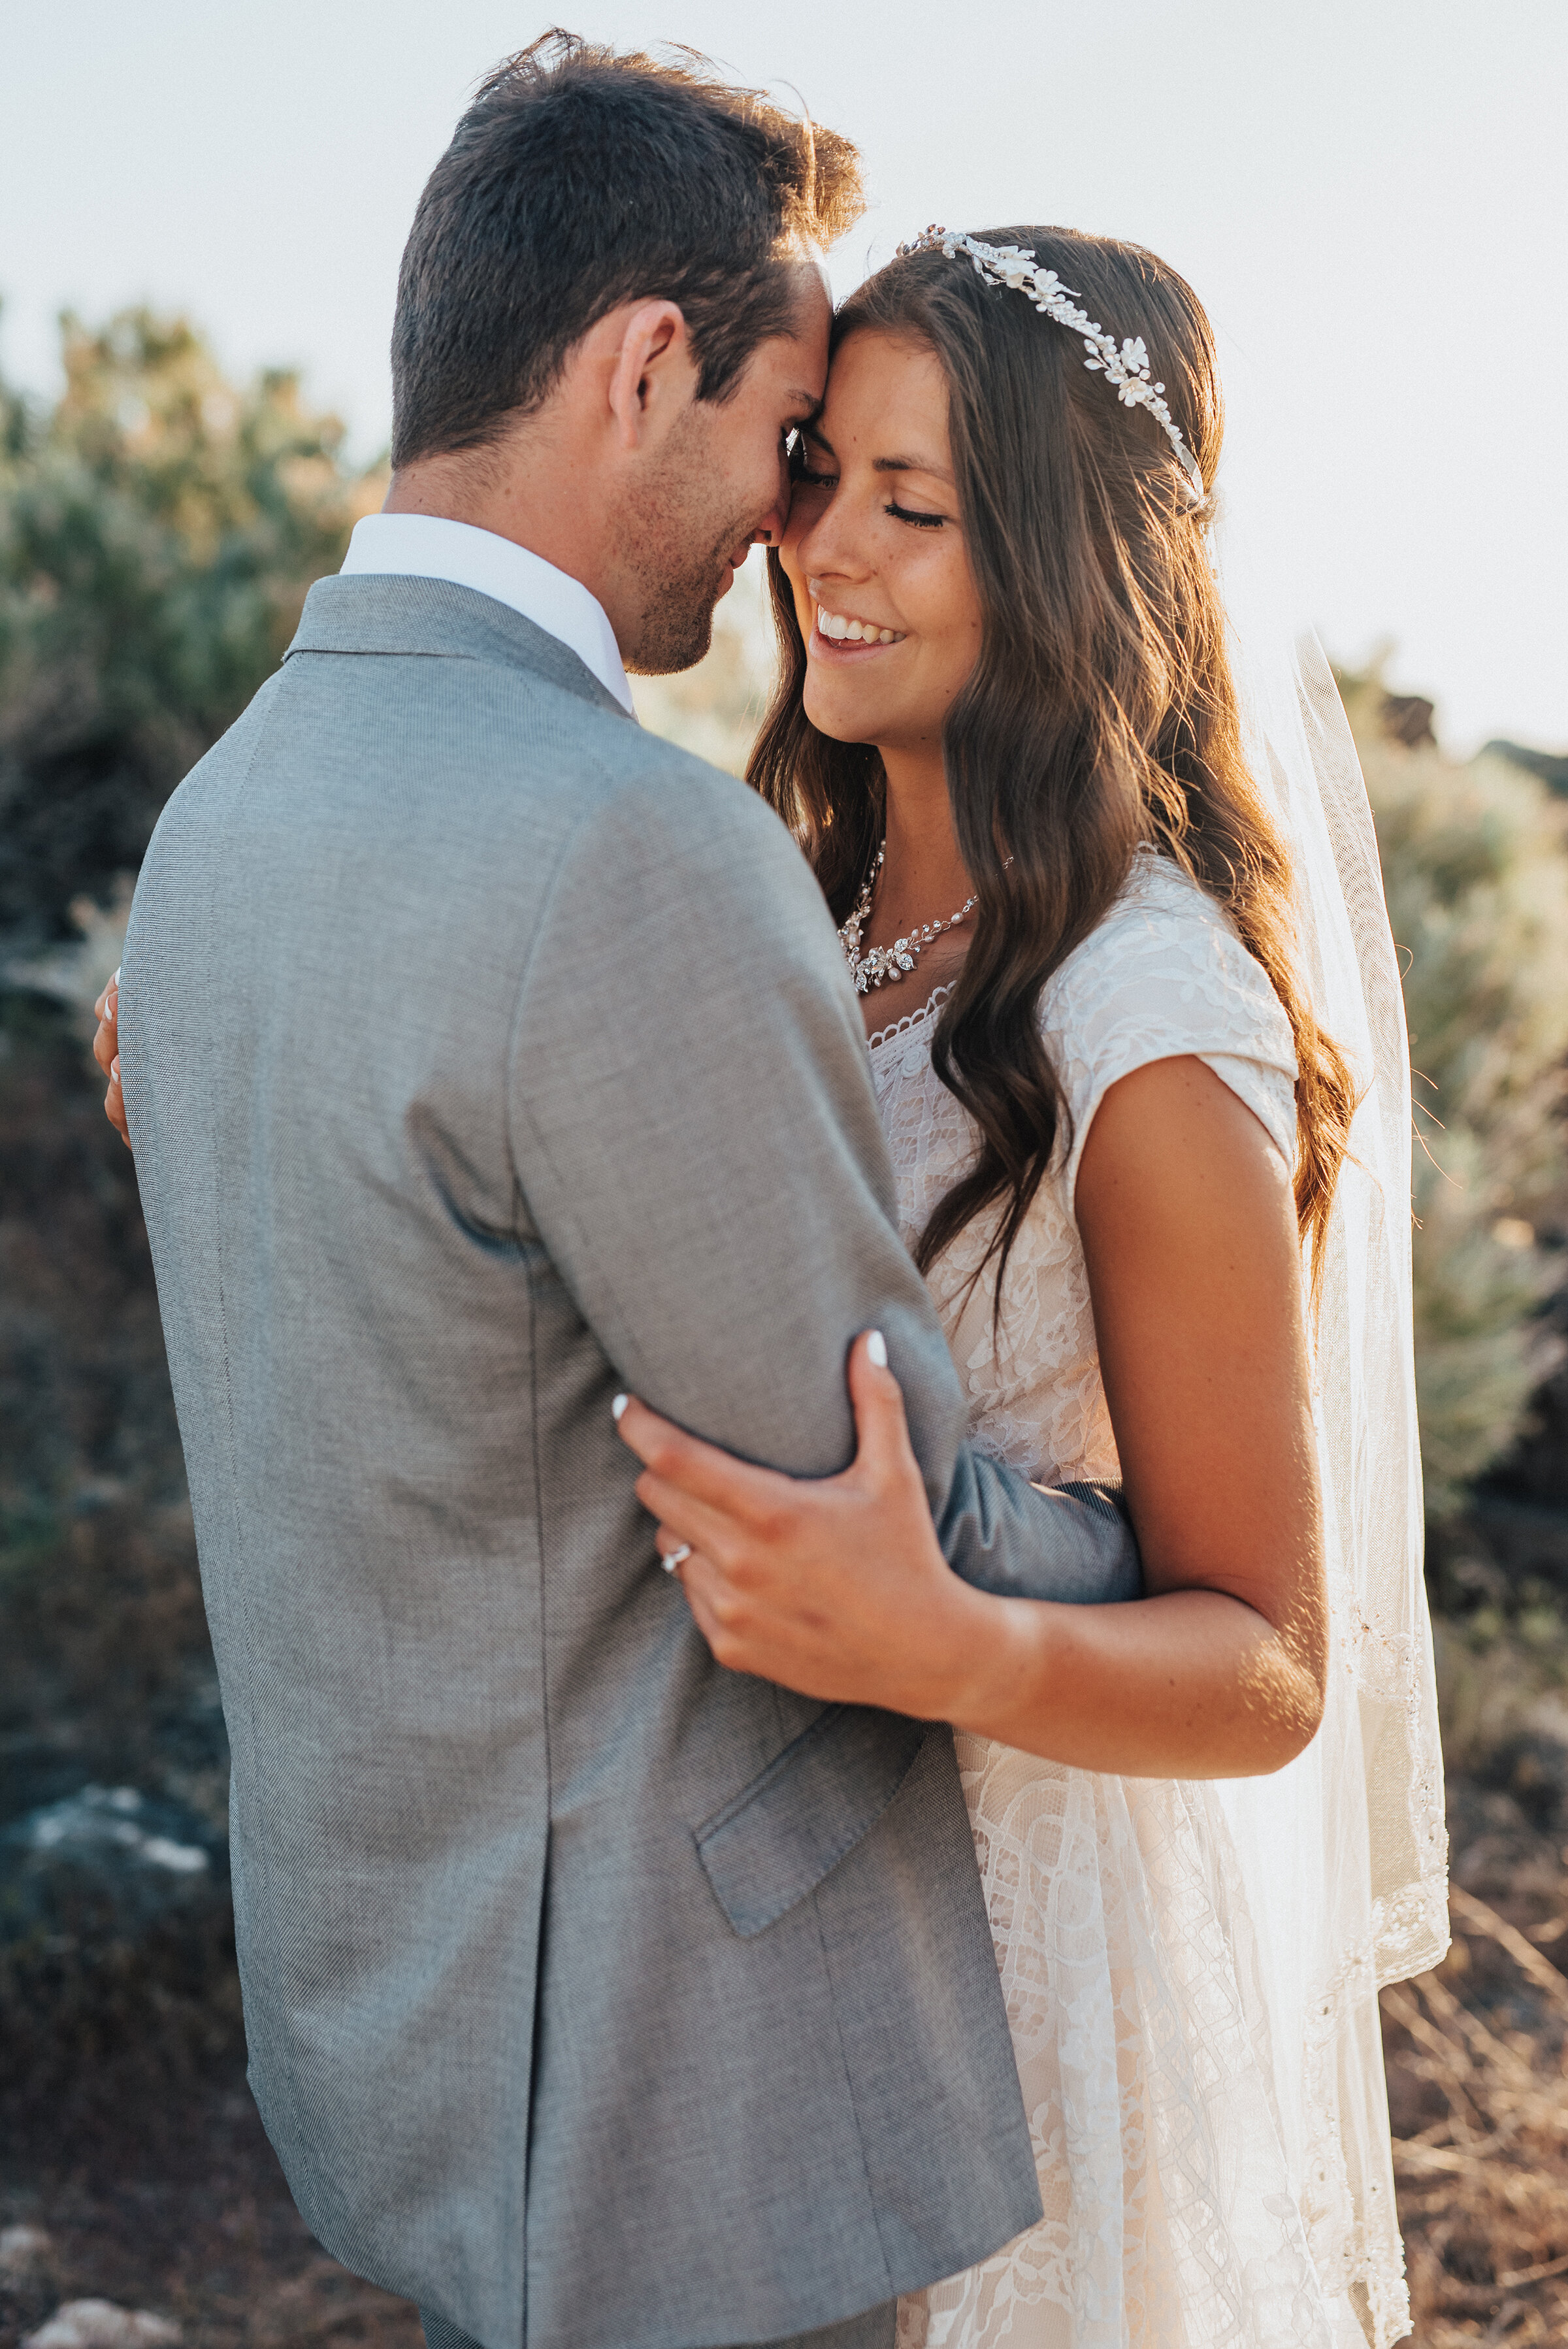 Her smile says a thousand words as the sun dances across her long cathedral veil at the Spiral Jetty in Northern Utah. elegant sweet formal session great salt lake utah photographer #spiraljetty #GreatSaltLake #formalsession #SaltFlats #sunsetphotosession #NorthernUtah #weddingphotographer #formalphotographer #brideandgroom #outdoorformals #weddingformalphotography